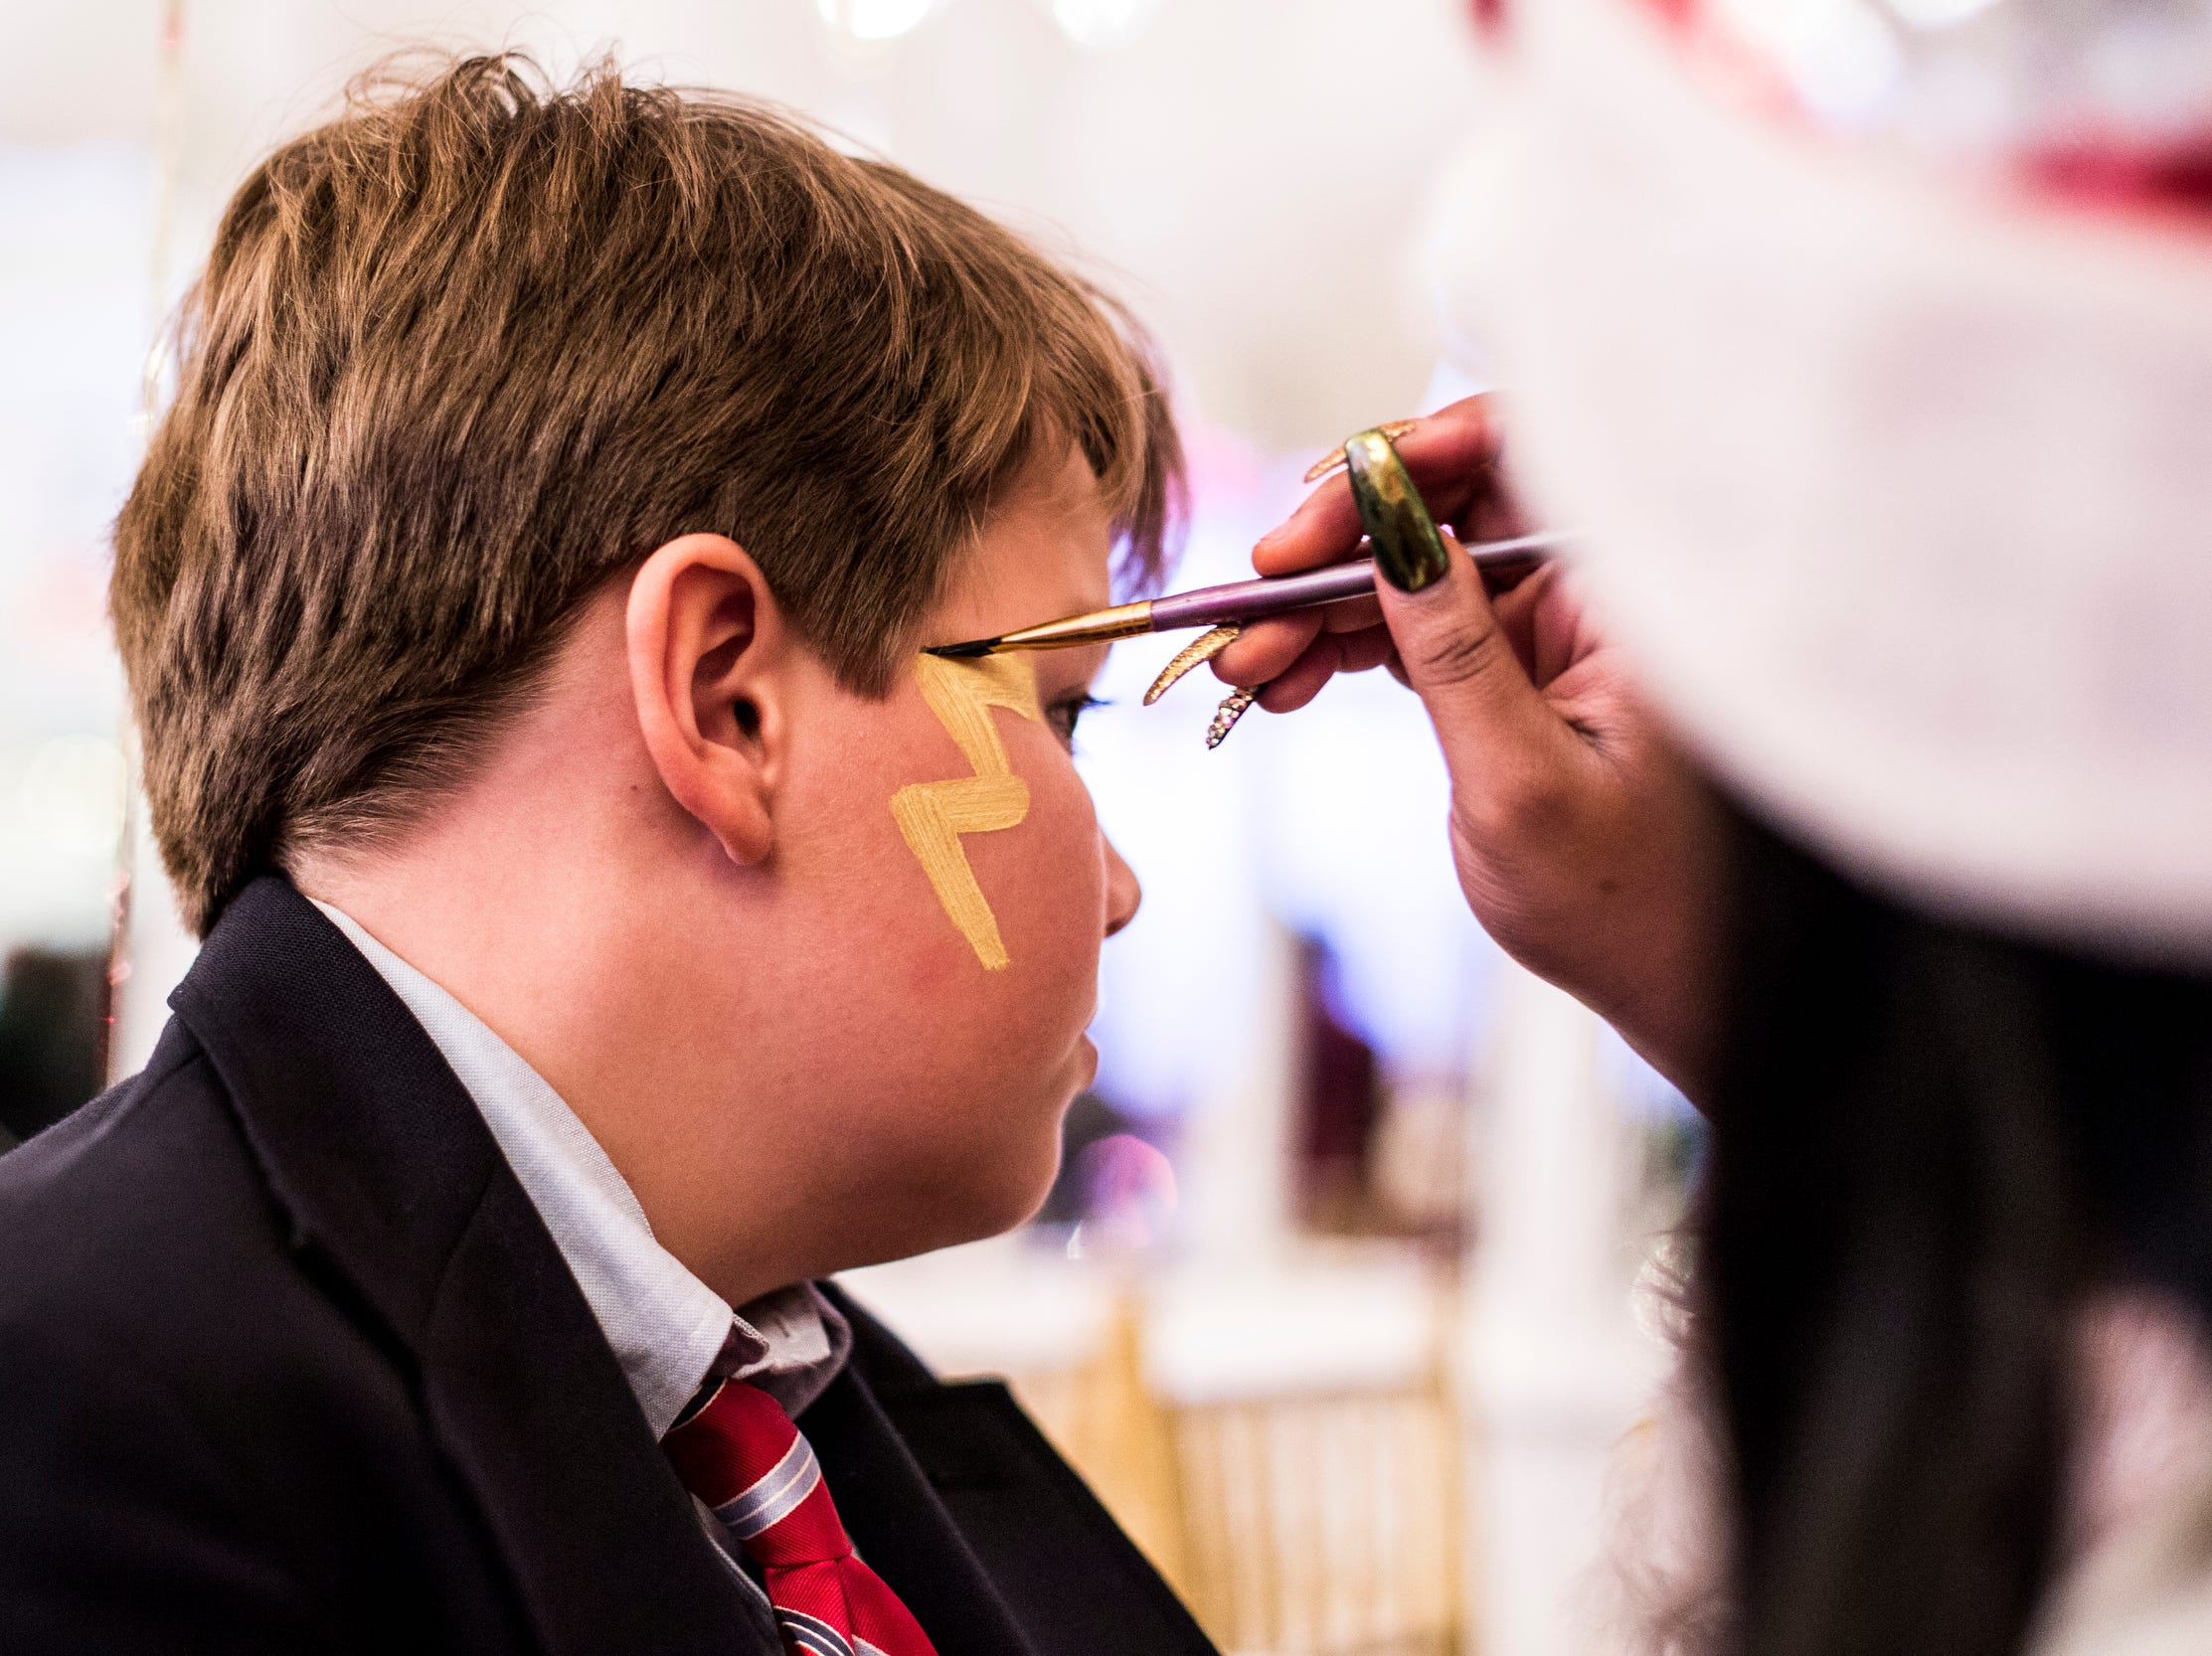 Garrett Johnson, 10, gets a lightning bolt painted on his face during the Memphis Jingle Bell Ball Holiday Cookie Party inside of the Continental Ballroom at the Peabody Hotel on Dec. 2, 2018. This was the 30th anniversary of the Jingle Bell Ball.